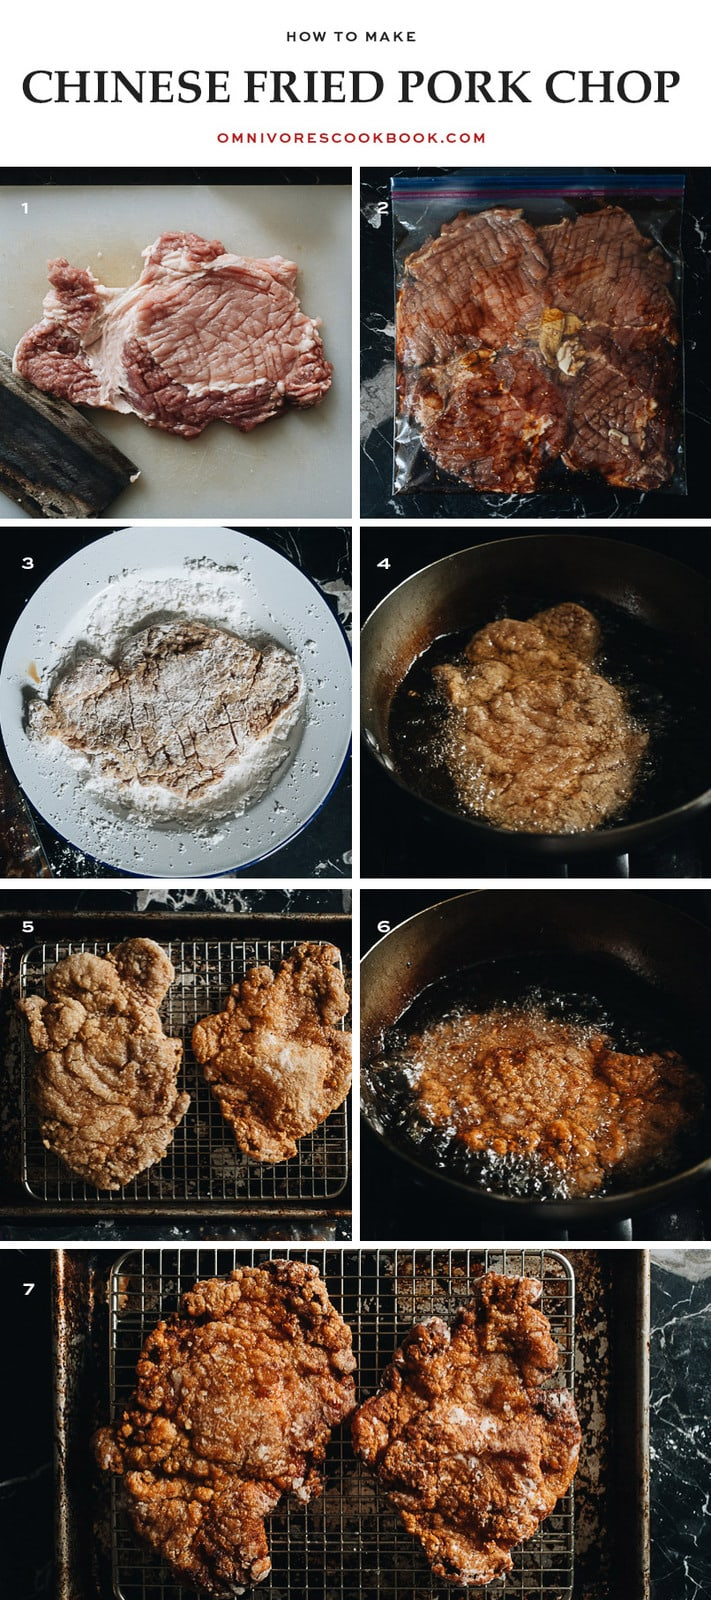 How to make Chinese fried pork chops step-by-step